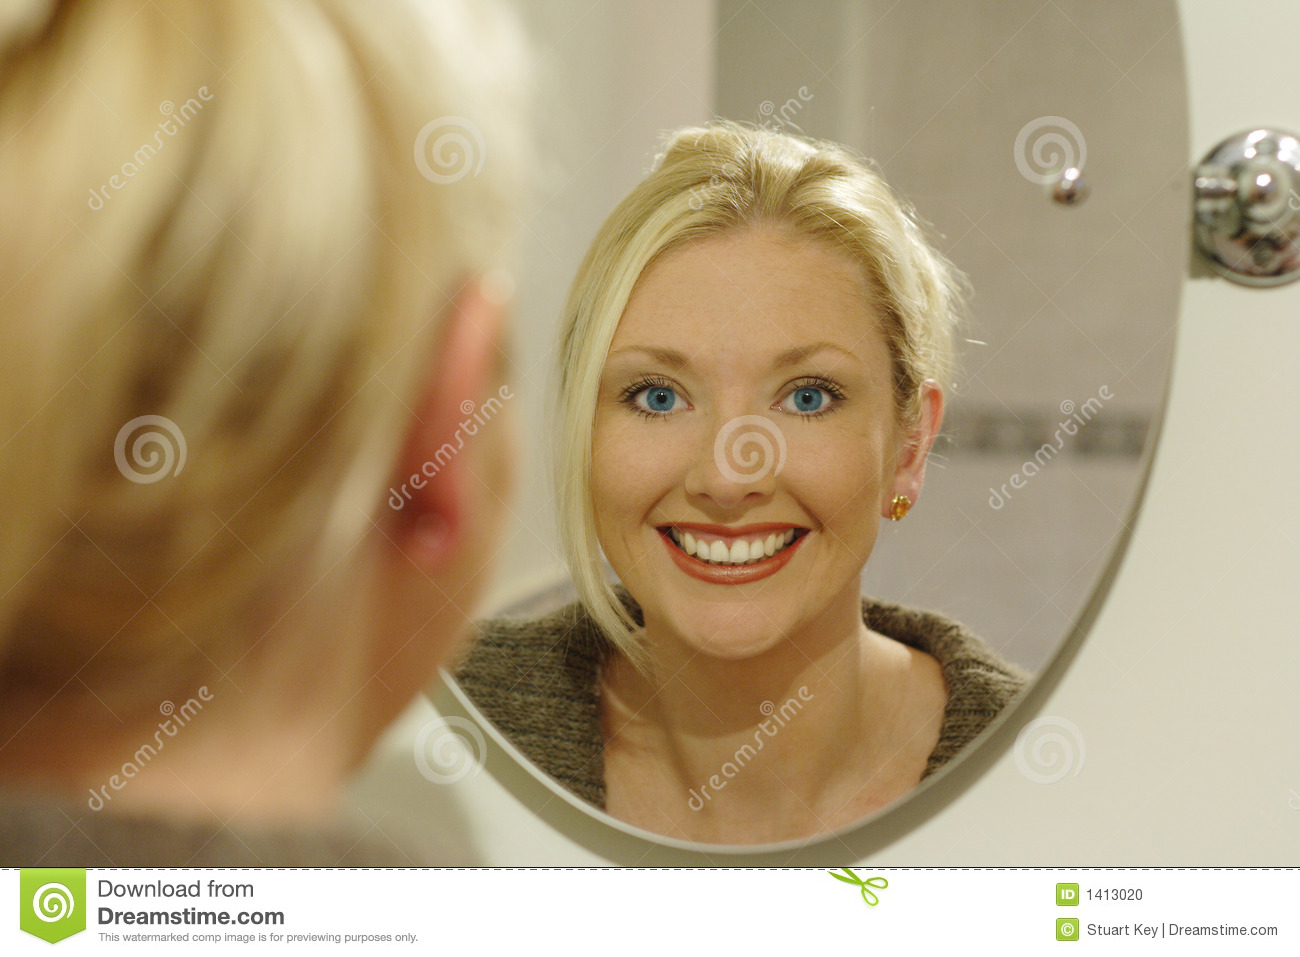 Beauty Mirror Beauty In The Mirror Stock Photo Image Of Eyes